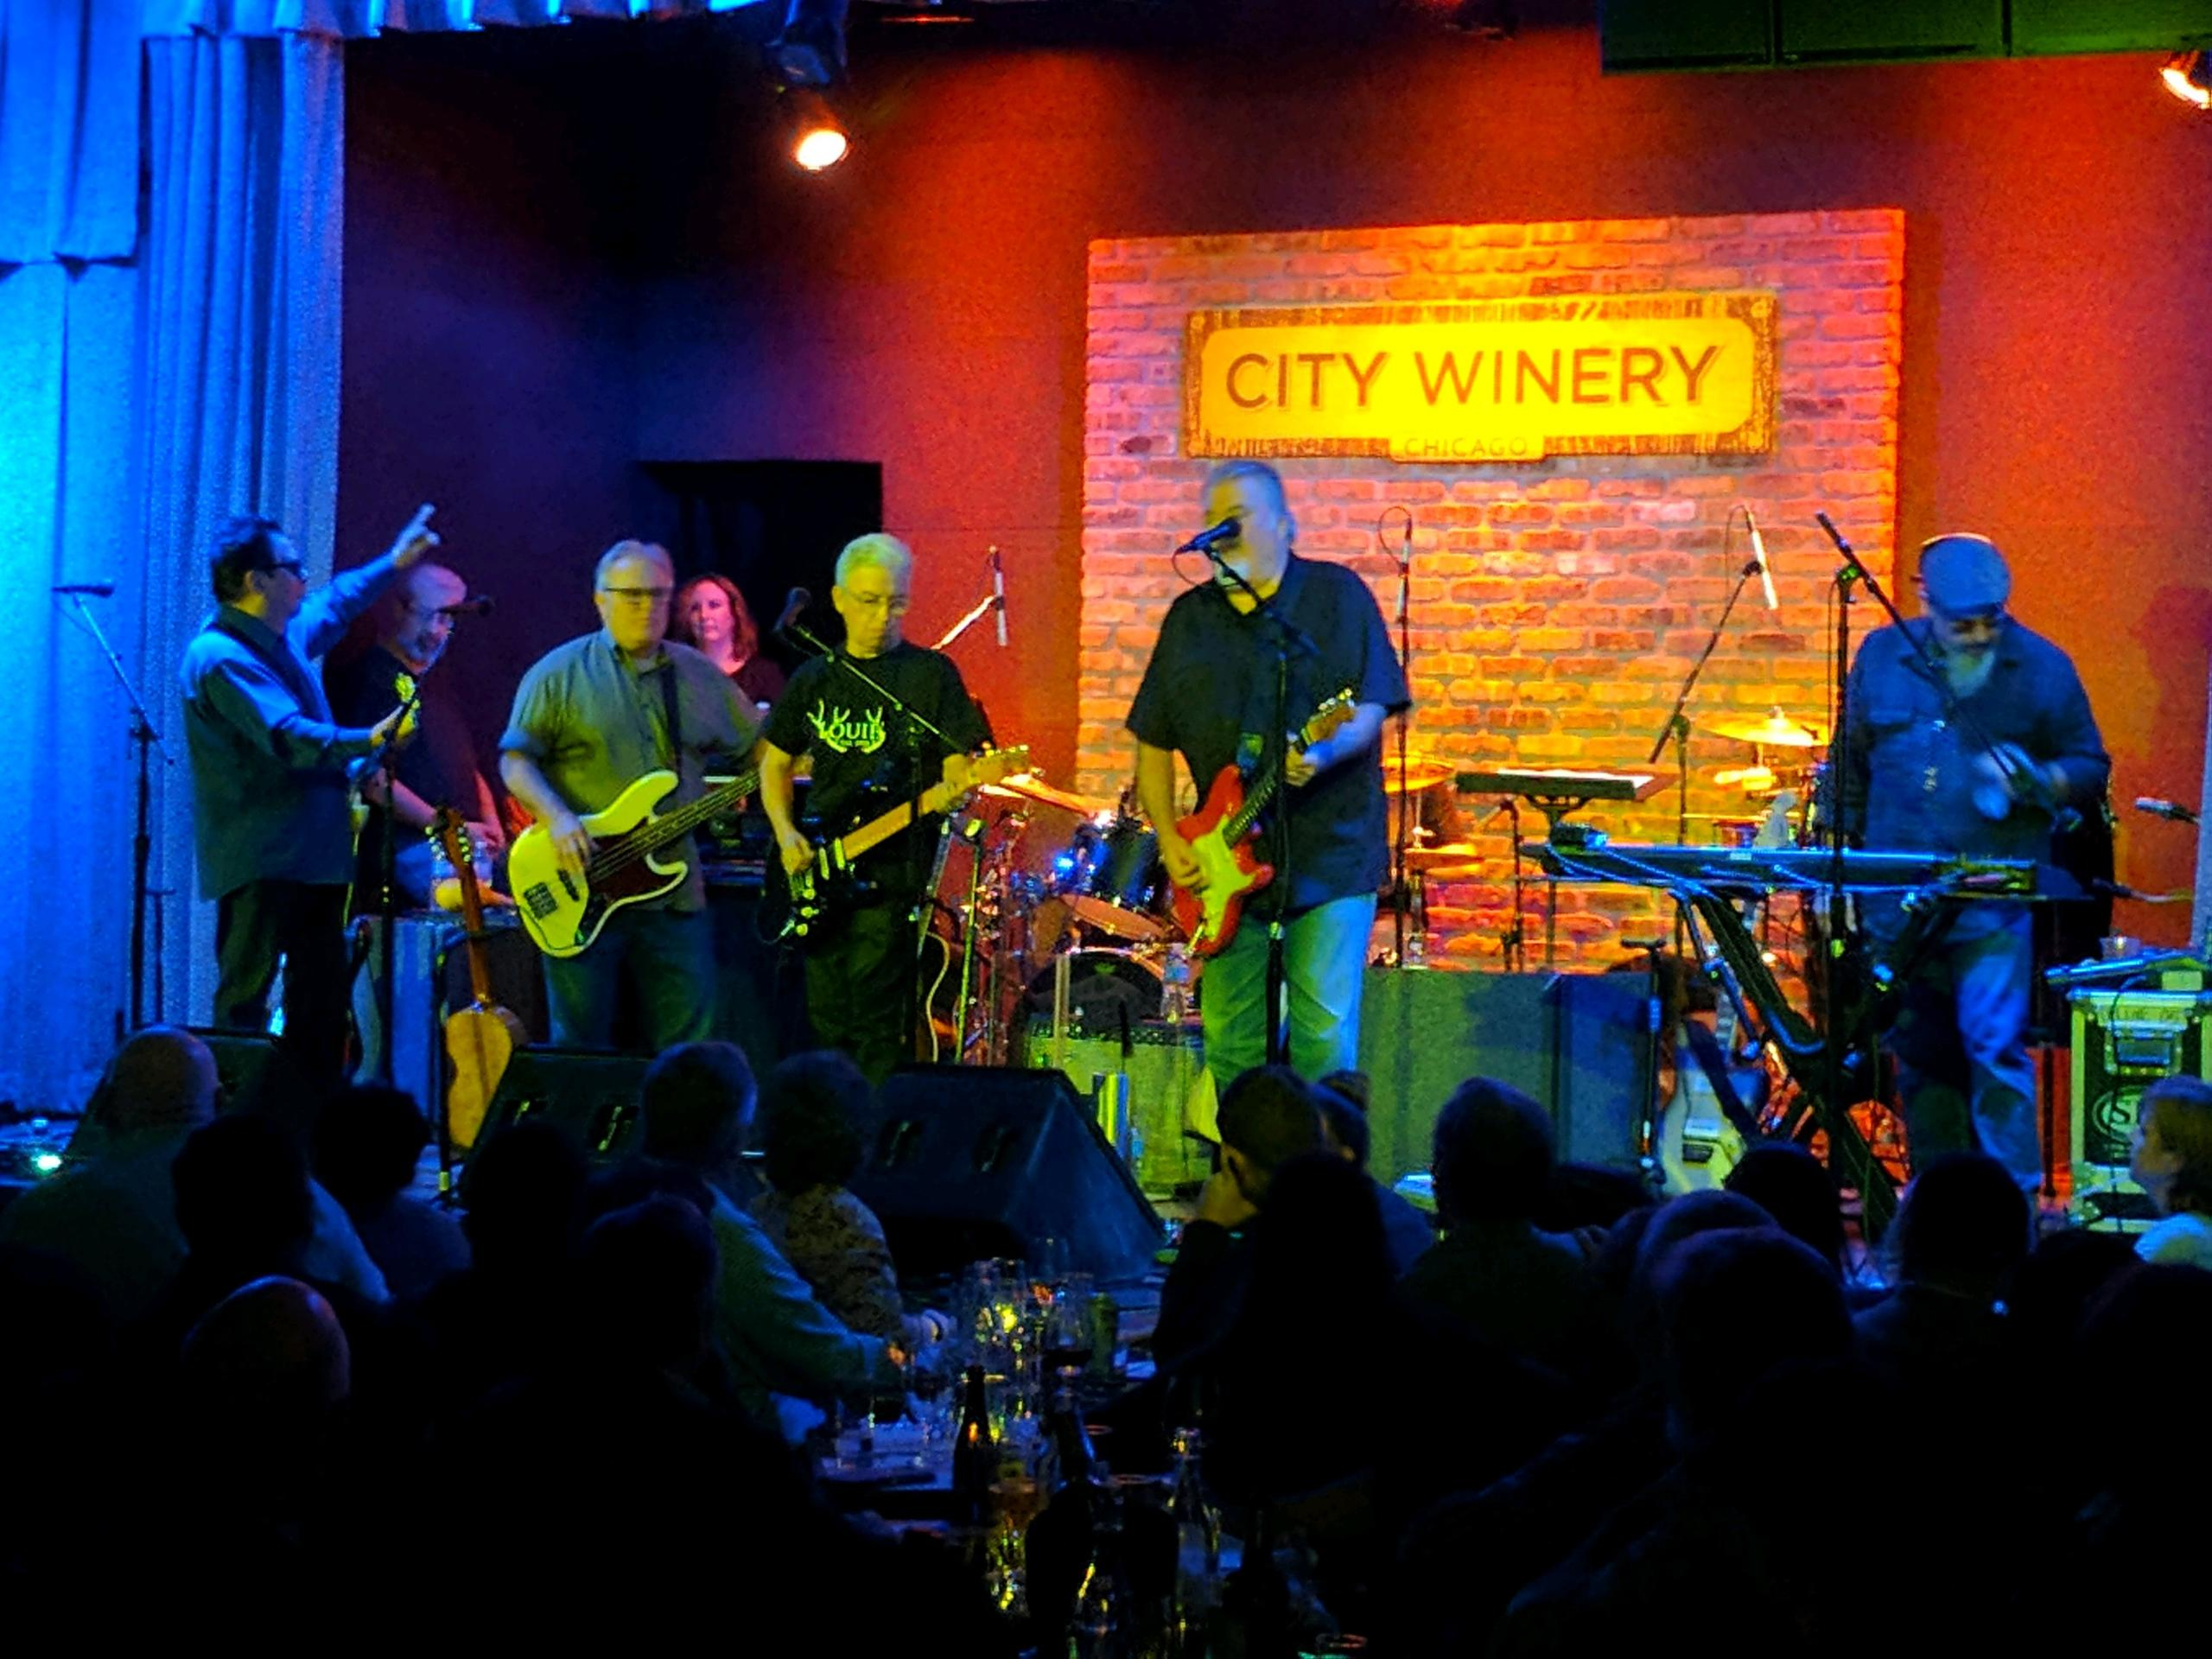 LosLobos2016-12-12CityWineryChicagoIL.jpg